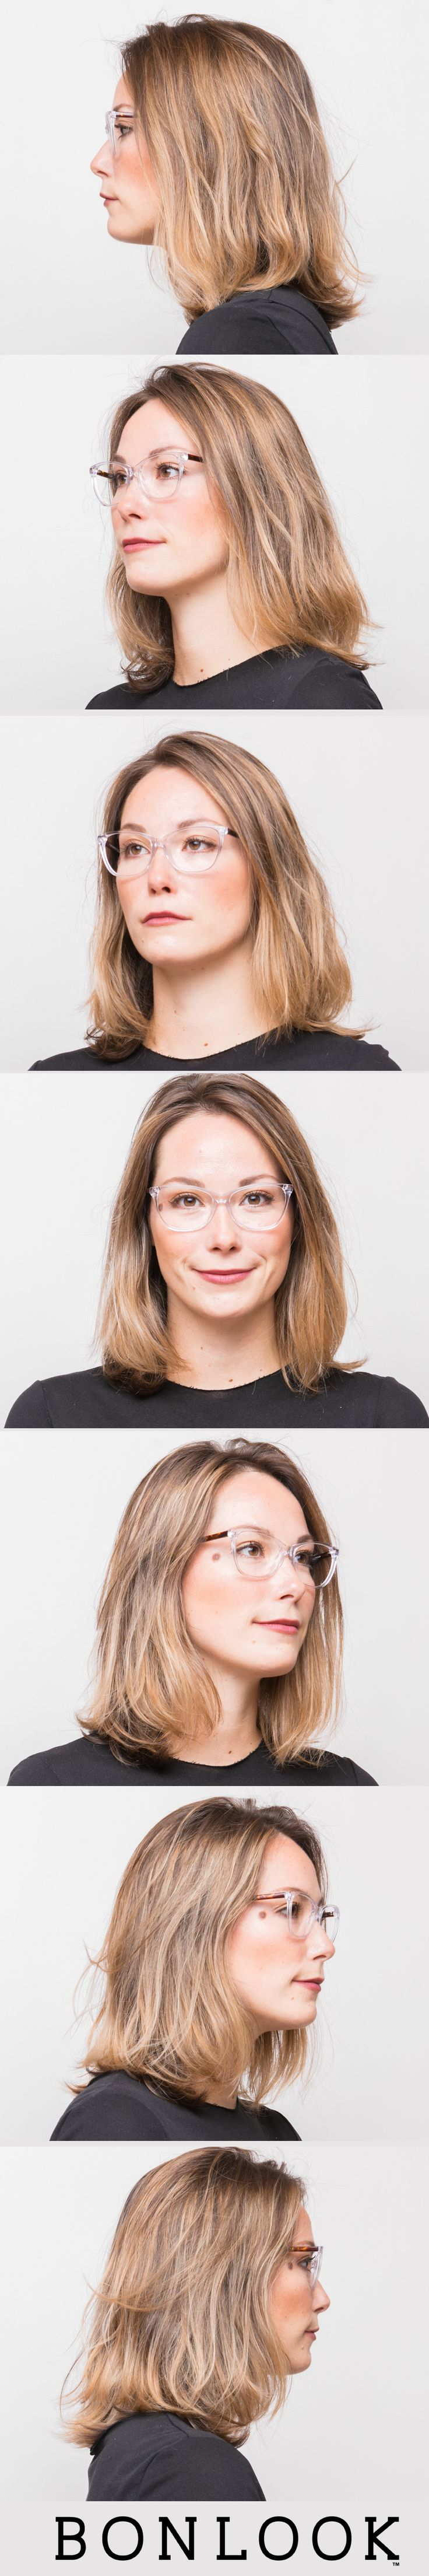 Flair Diamond tort - Flair is the perfect eyewear for the one's that have a natural instinct for fashion. Versatile and trendy, these frames will fit every face shape with elegance.